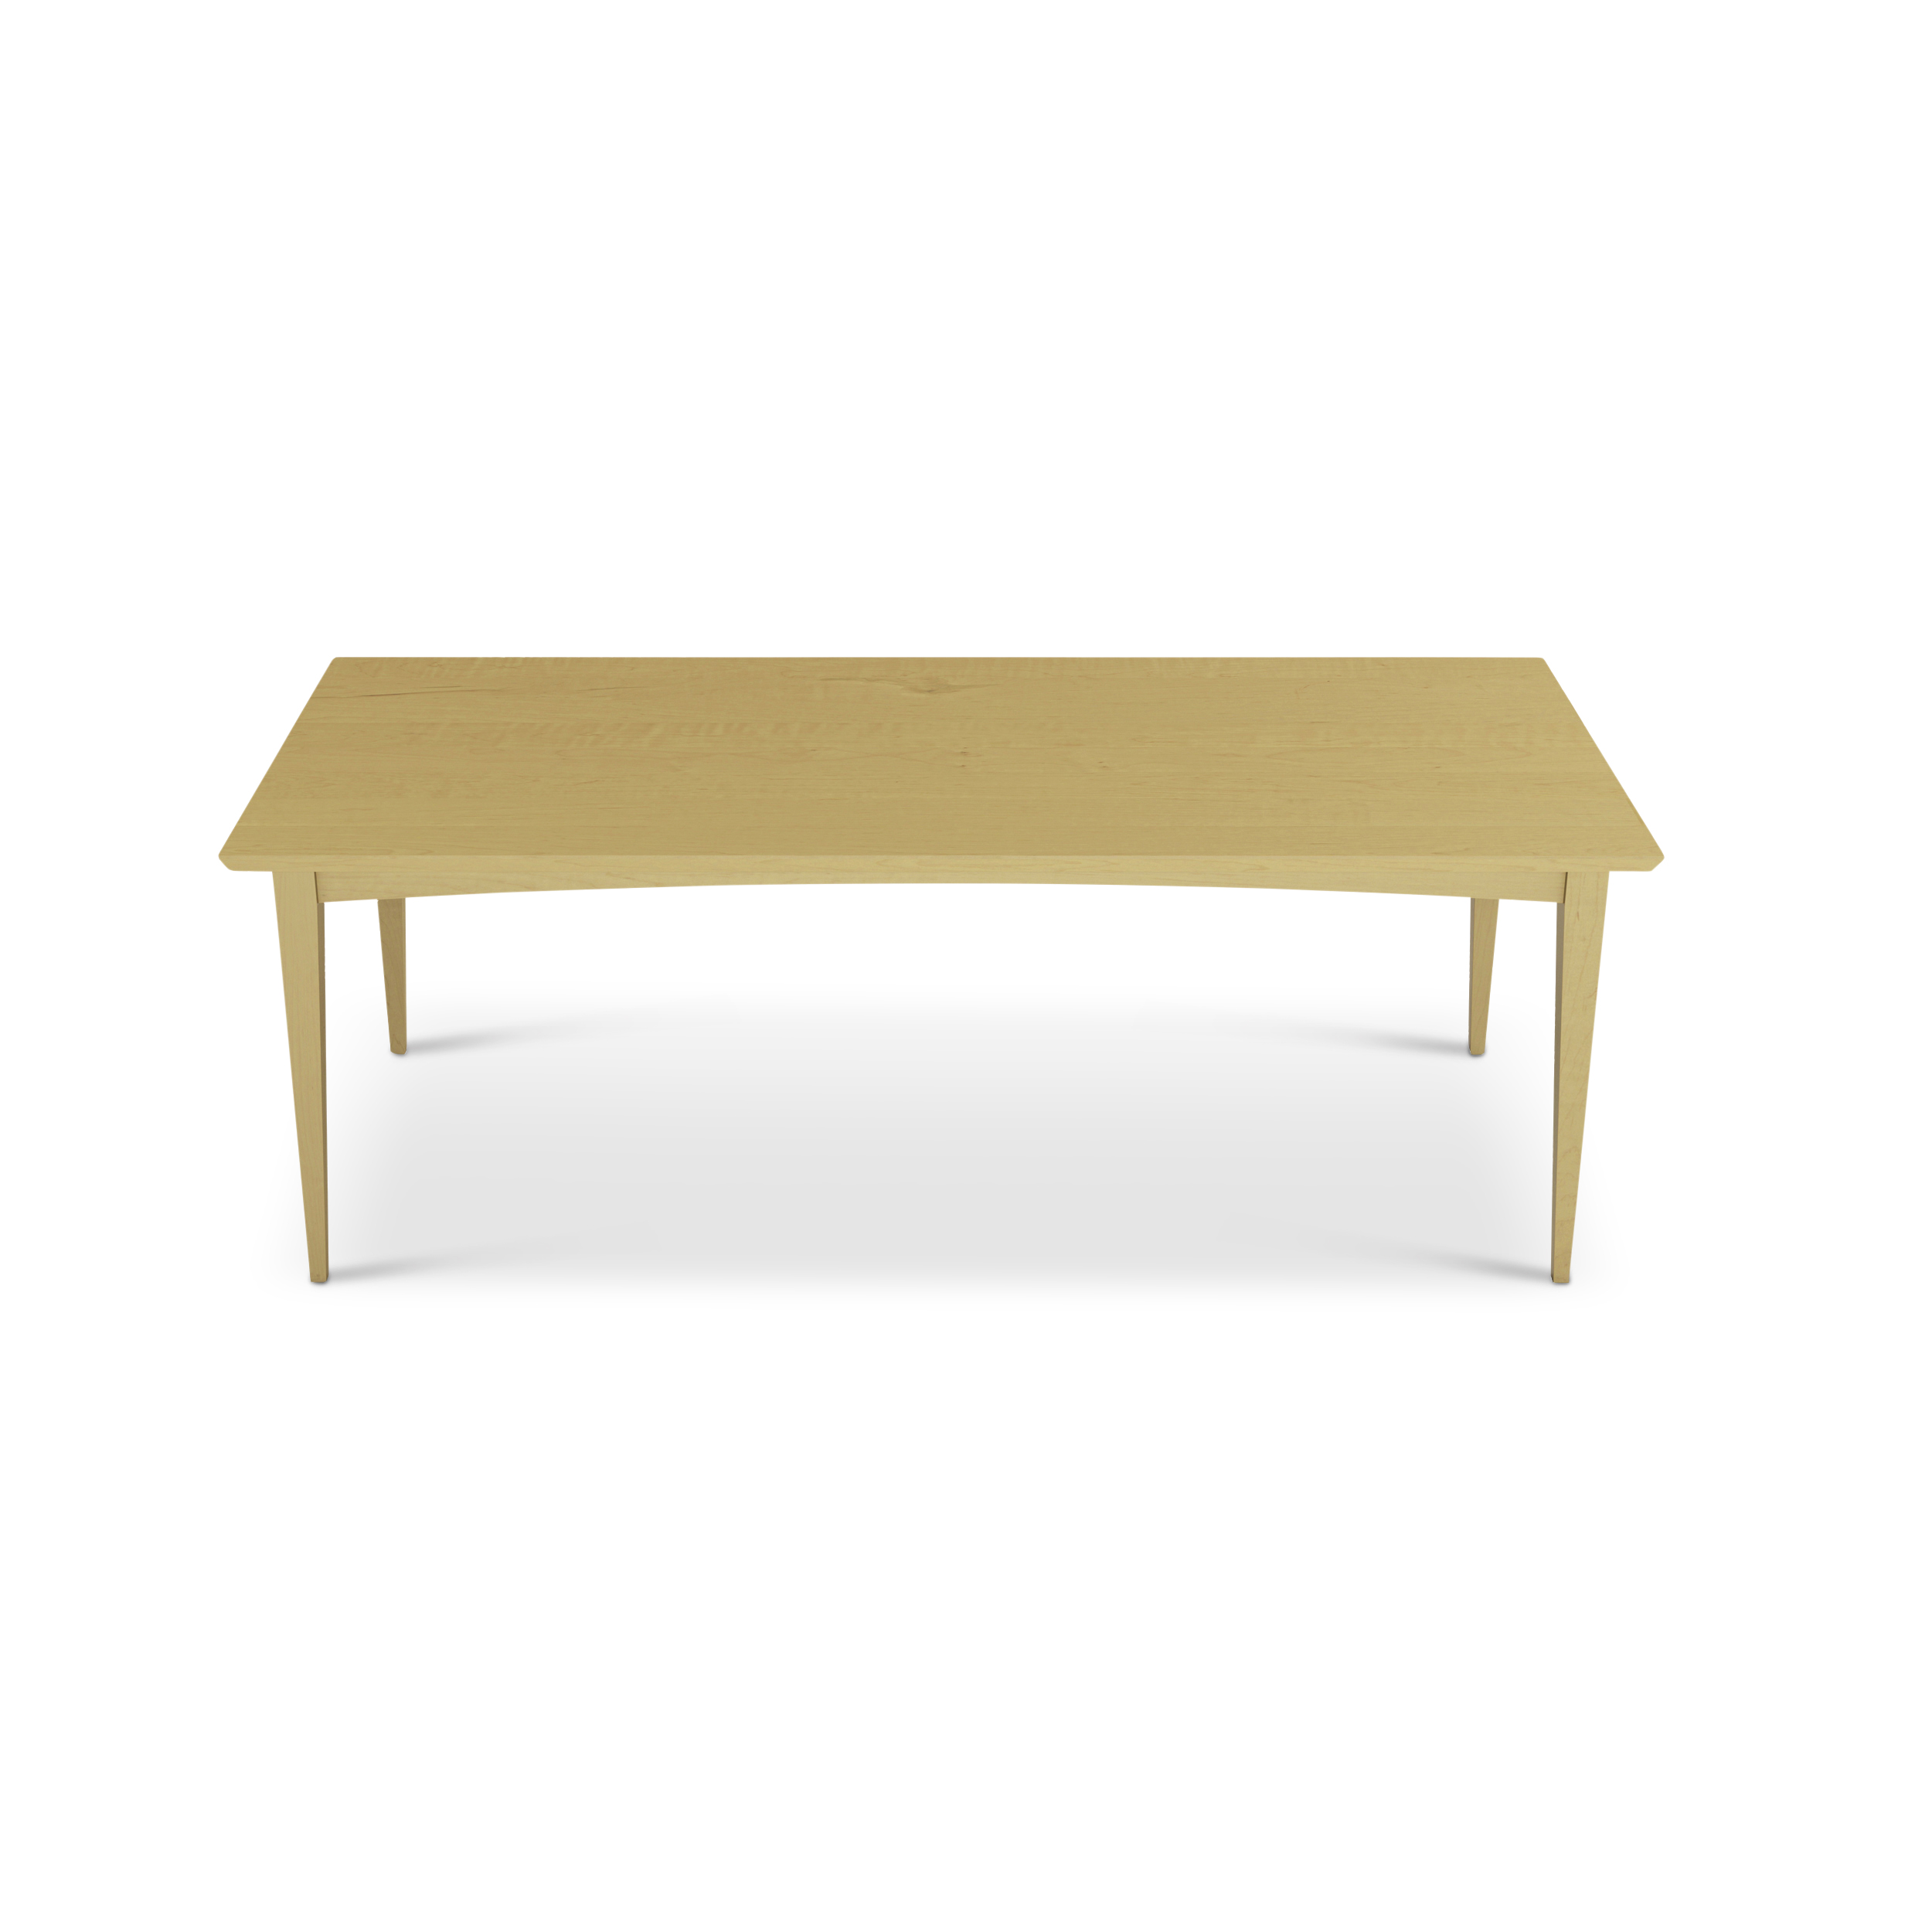 Tailored Solid Maple Mid-century Modern Dining Table